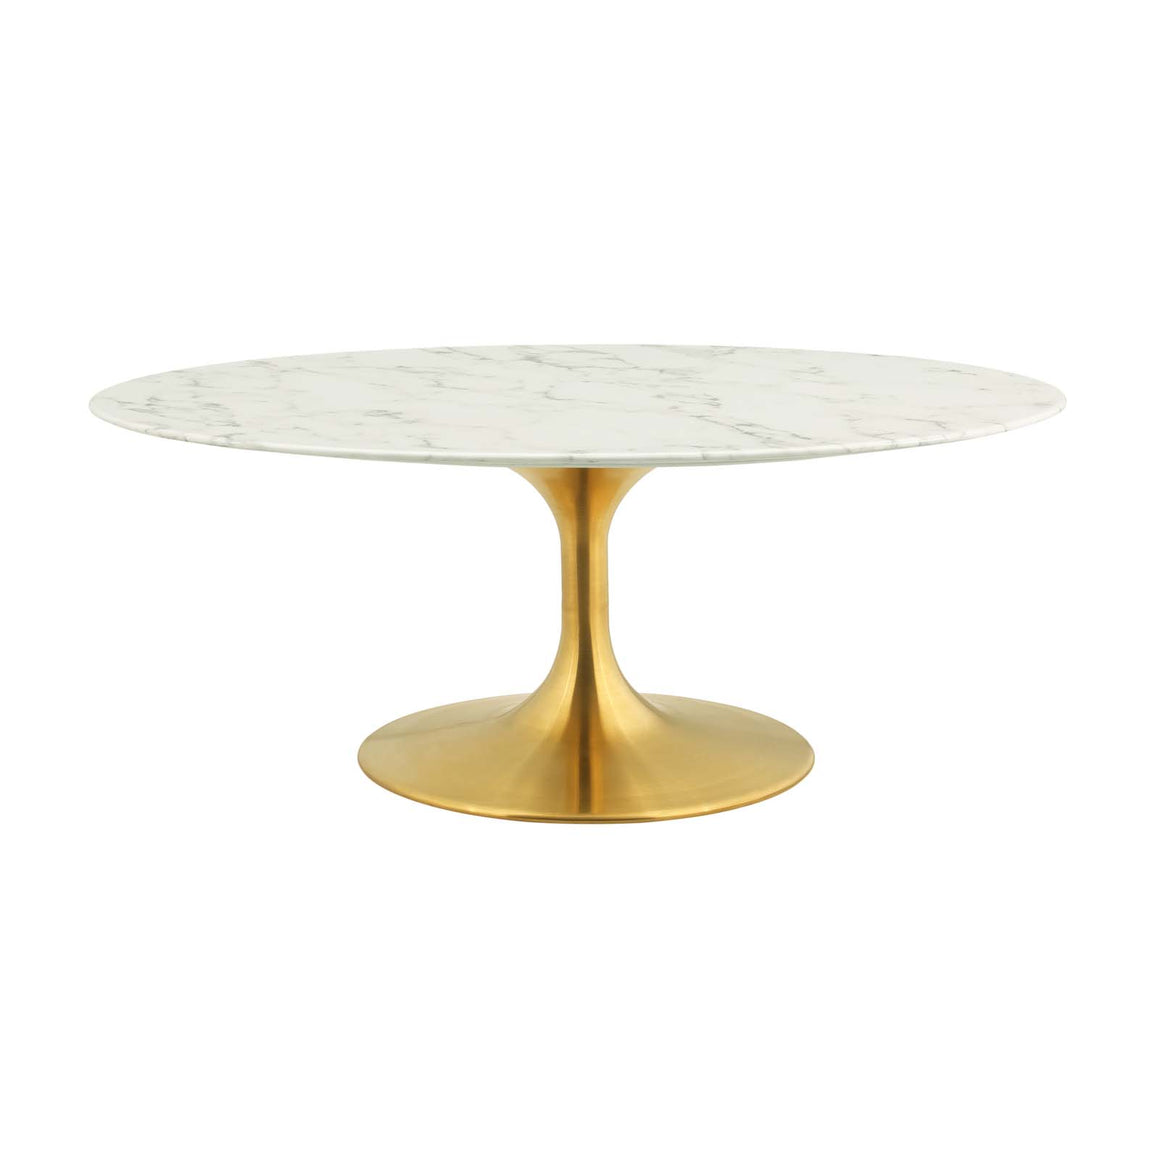 "LIPPA 42"" OVAL-SHAPED ARTIFICAL COFFEE TABLE IN GOLD WHITE"